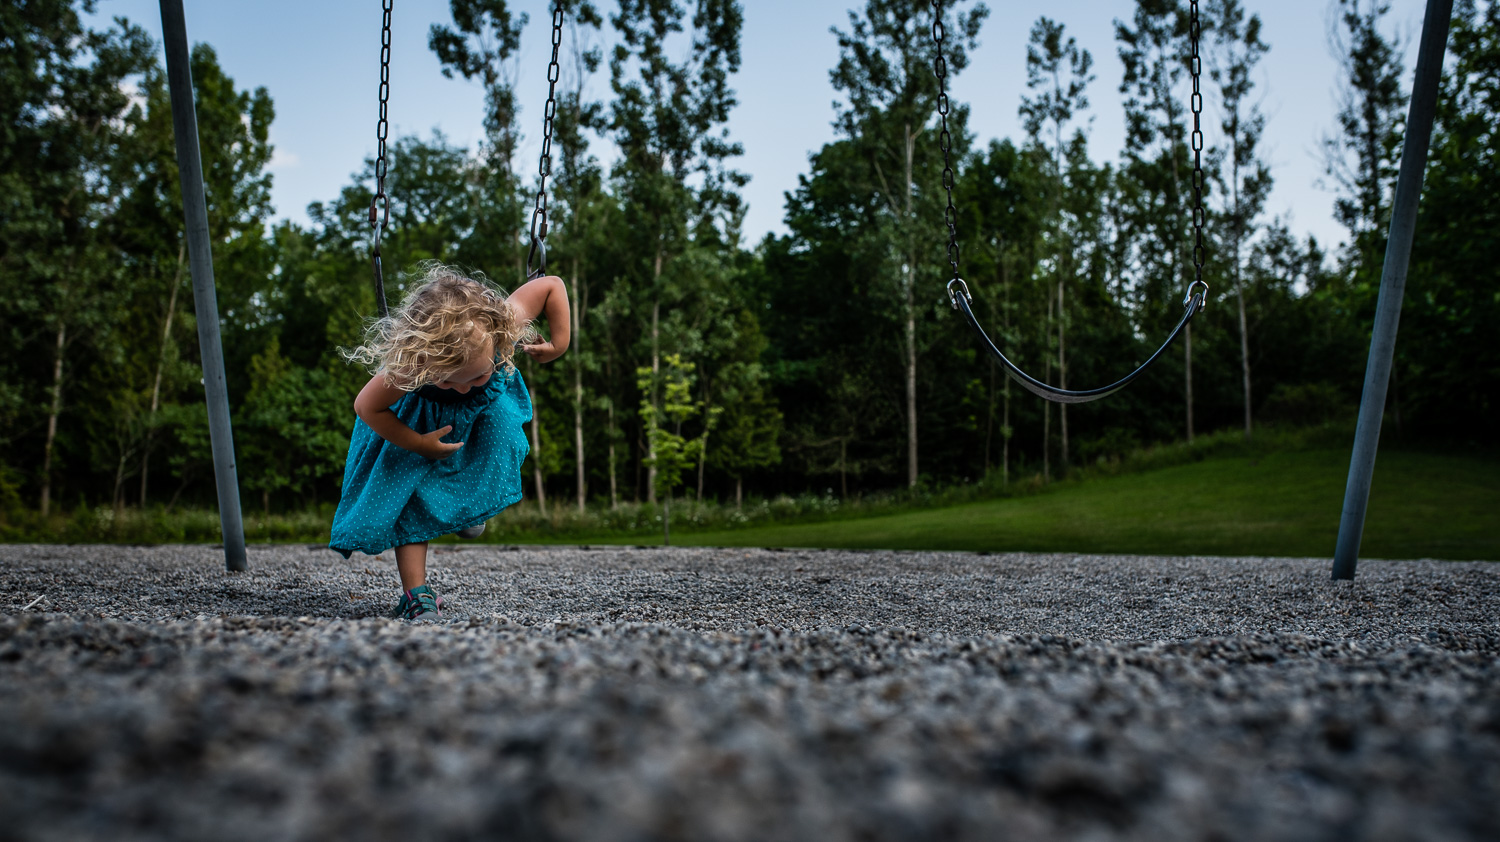 Toddler girl with curly hair in a teal blue dress laying on her tummy on a big kid swing over grey gravel with green trees and a blue sky in the background